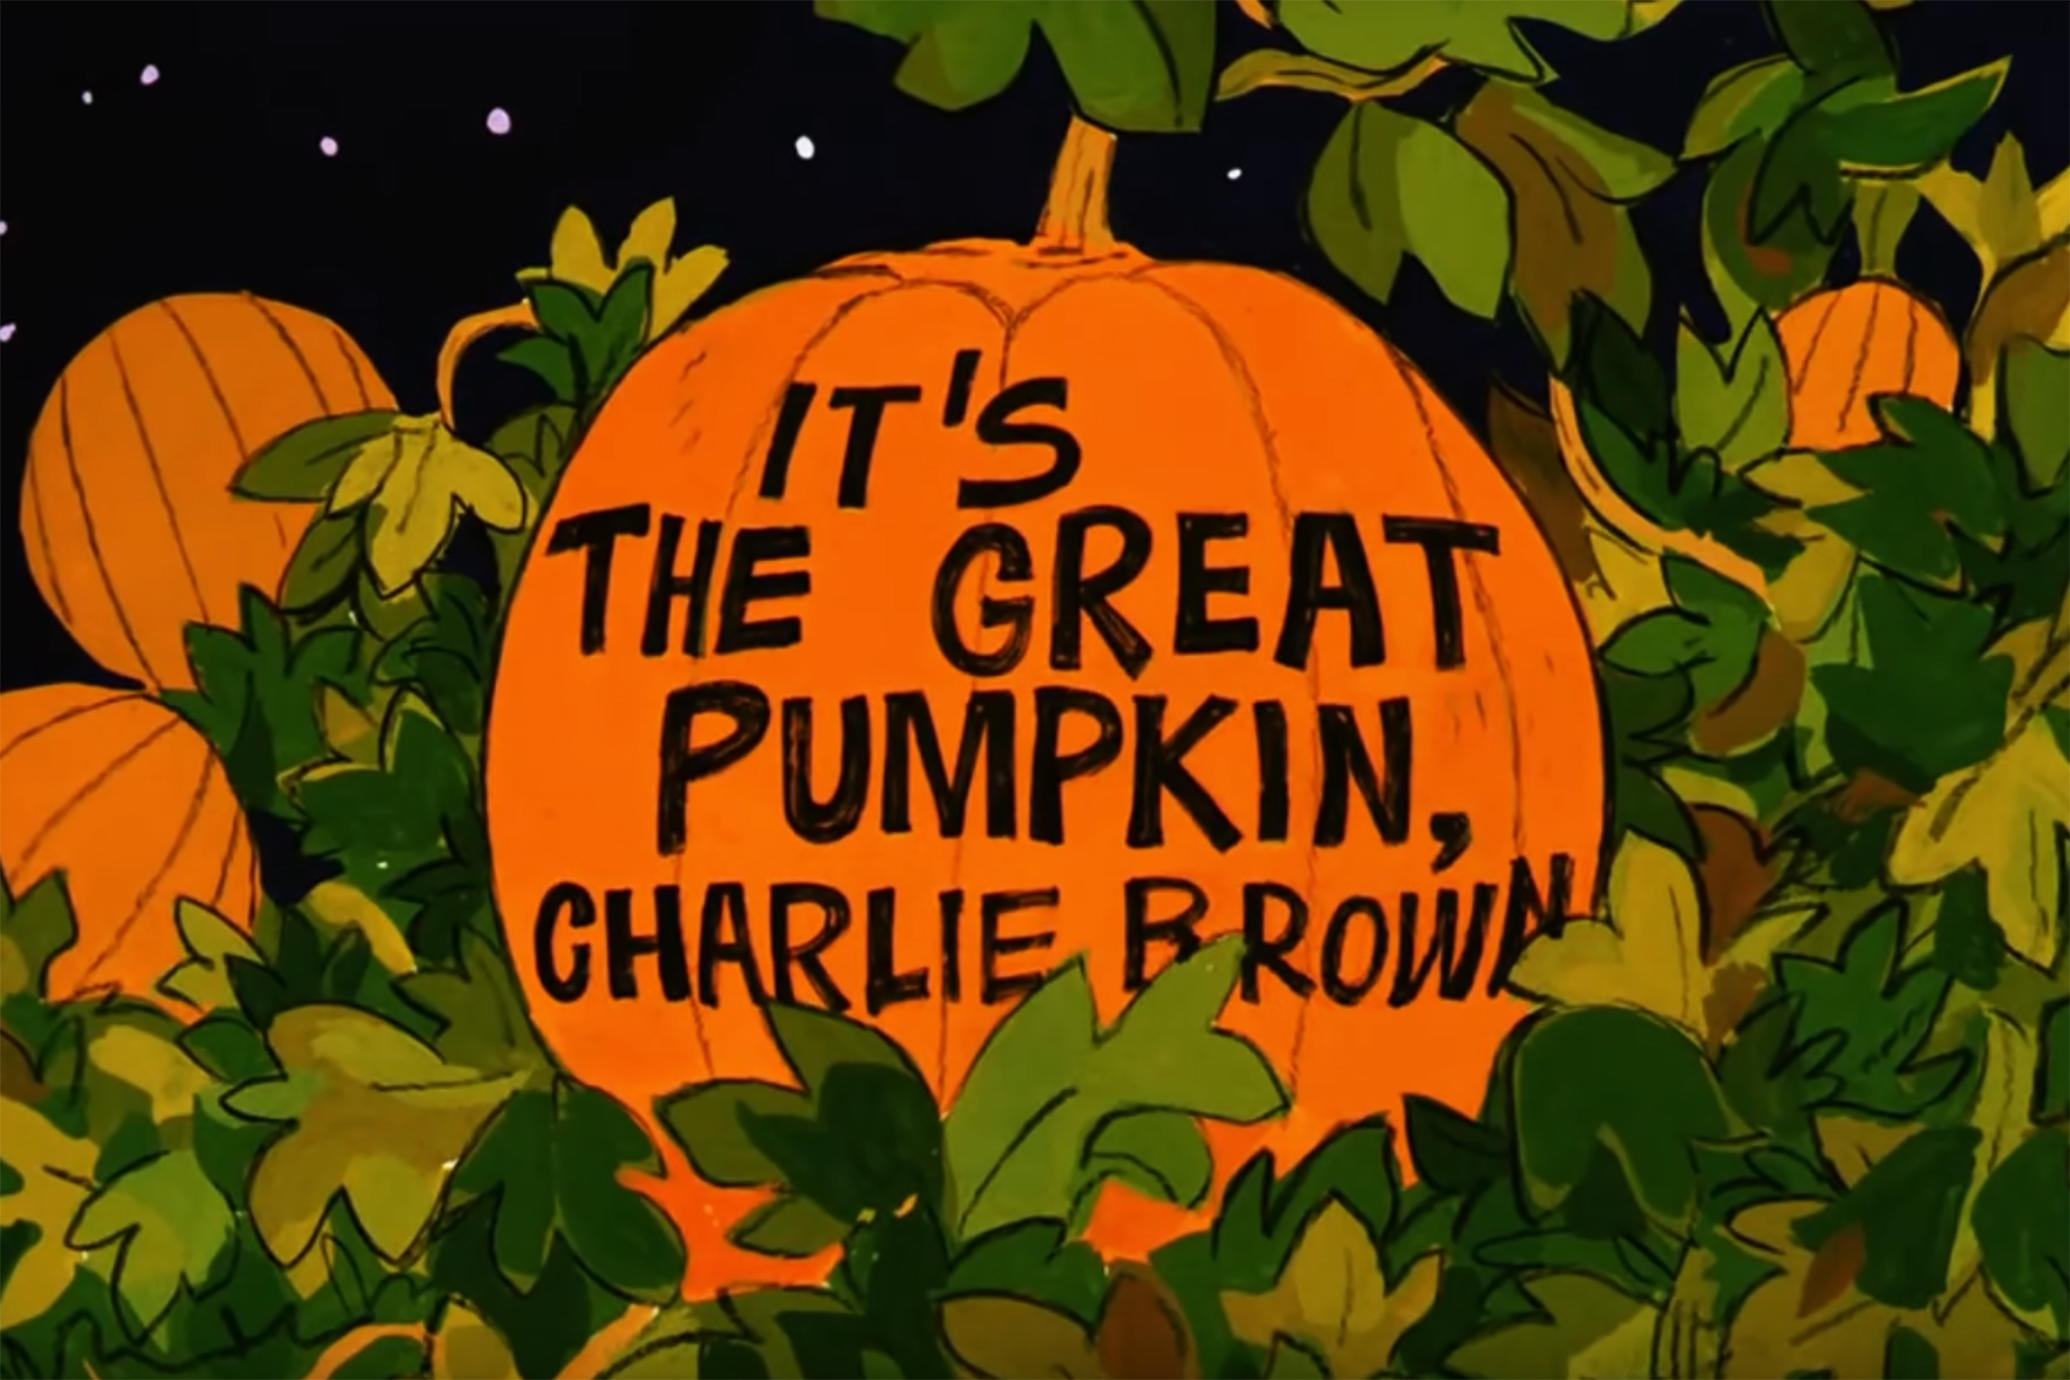 how to watch charlie brown halloween 2017, its the great pumpkin